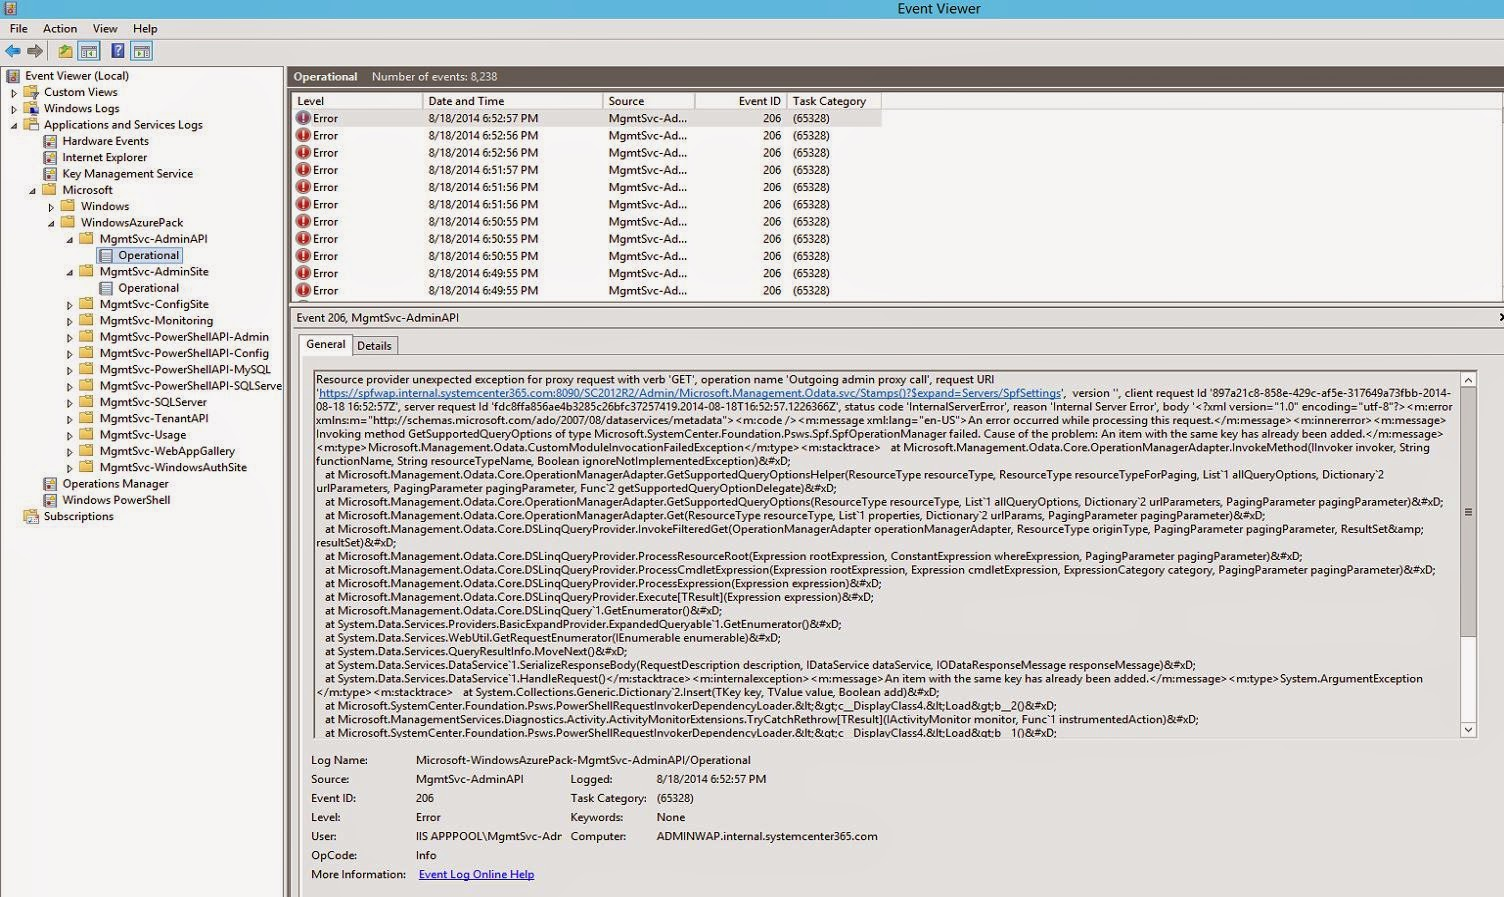 Virtualization and some coffee: VM Cloud is missing in Windows Azure